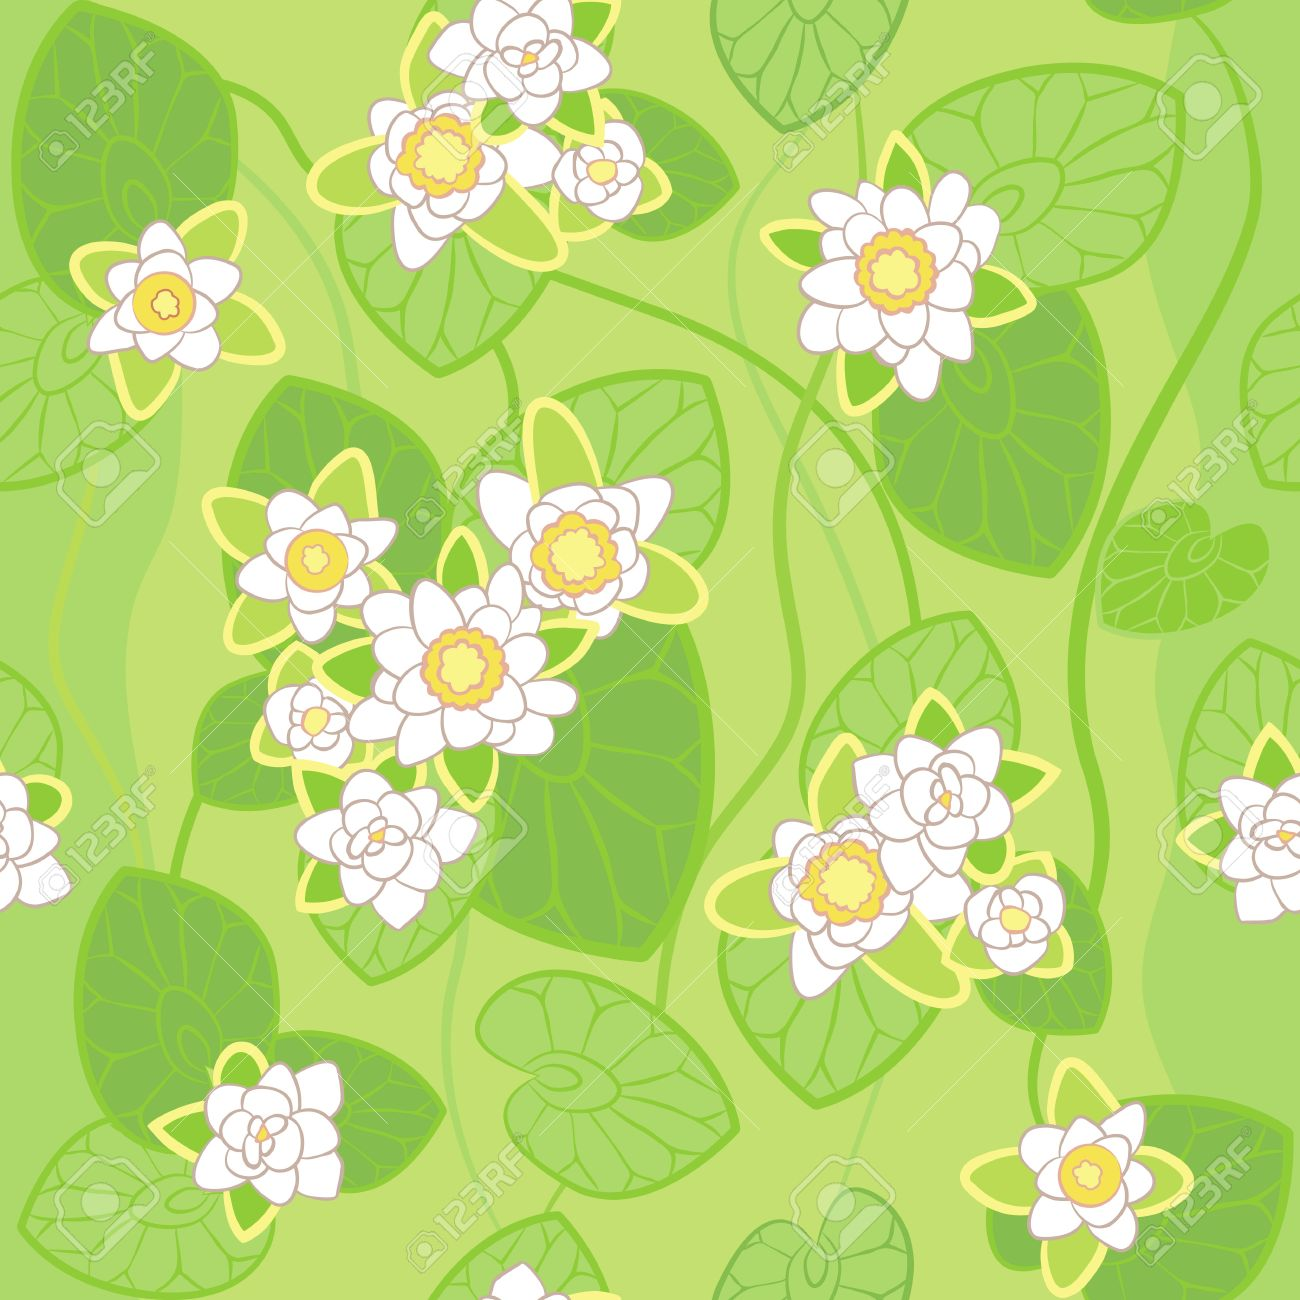 Swamp Water Background Clipart.